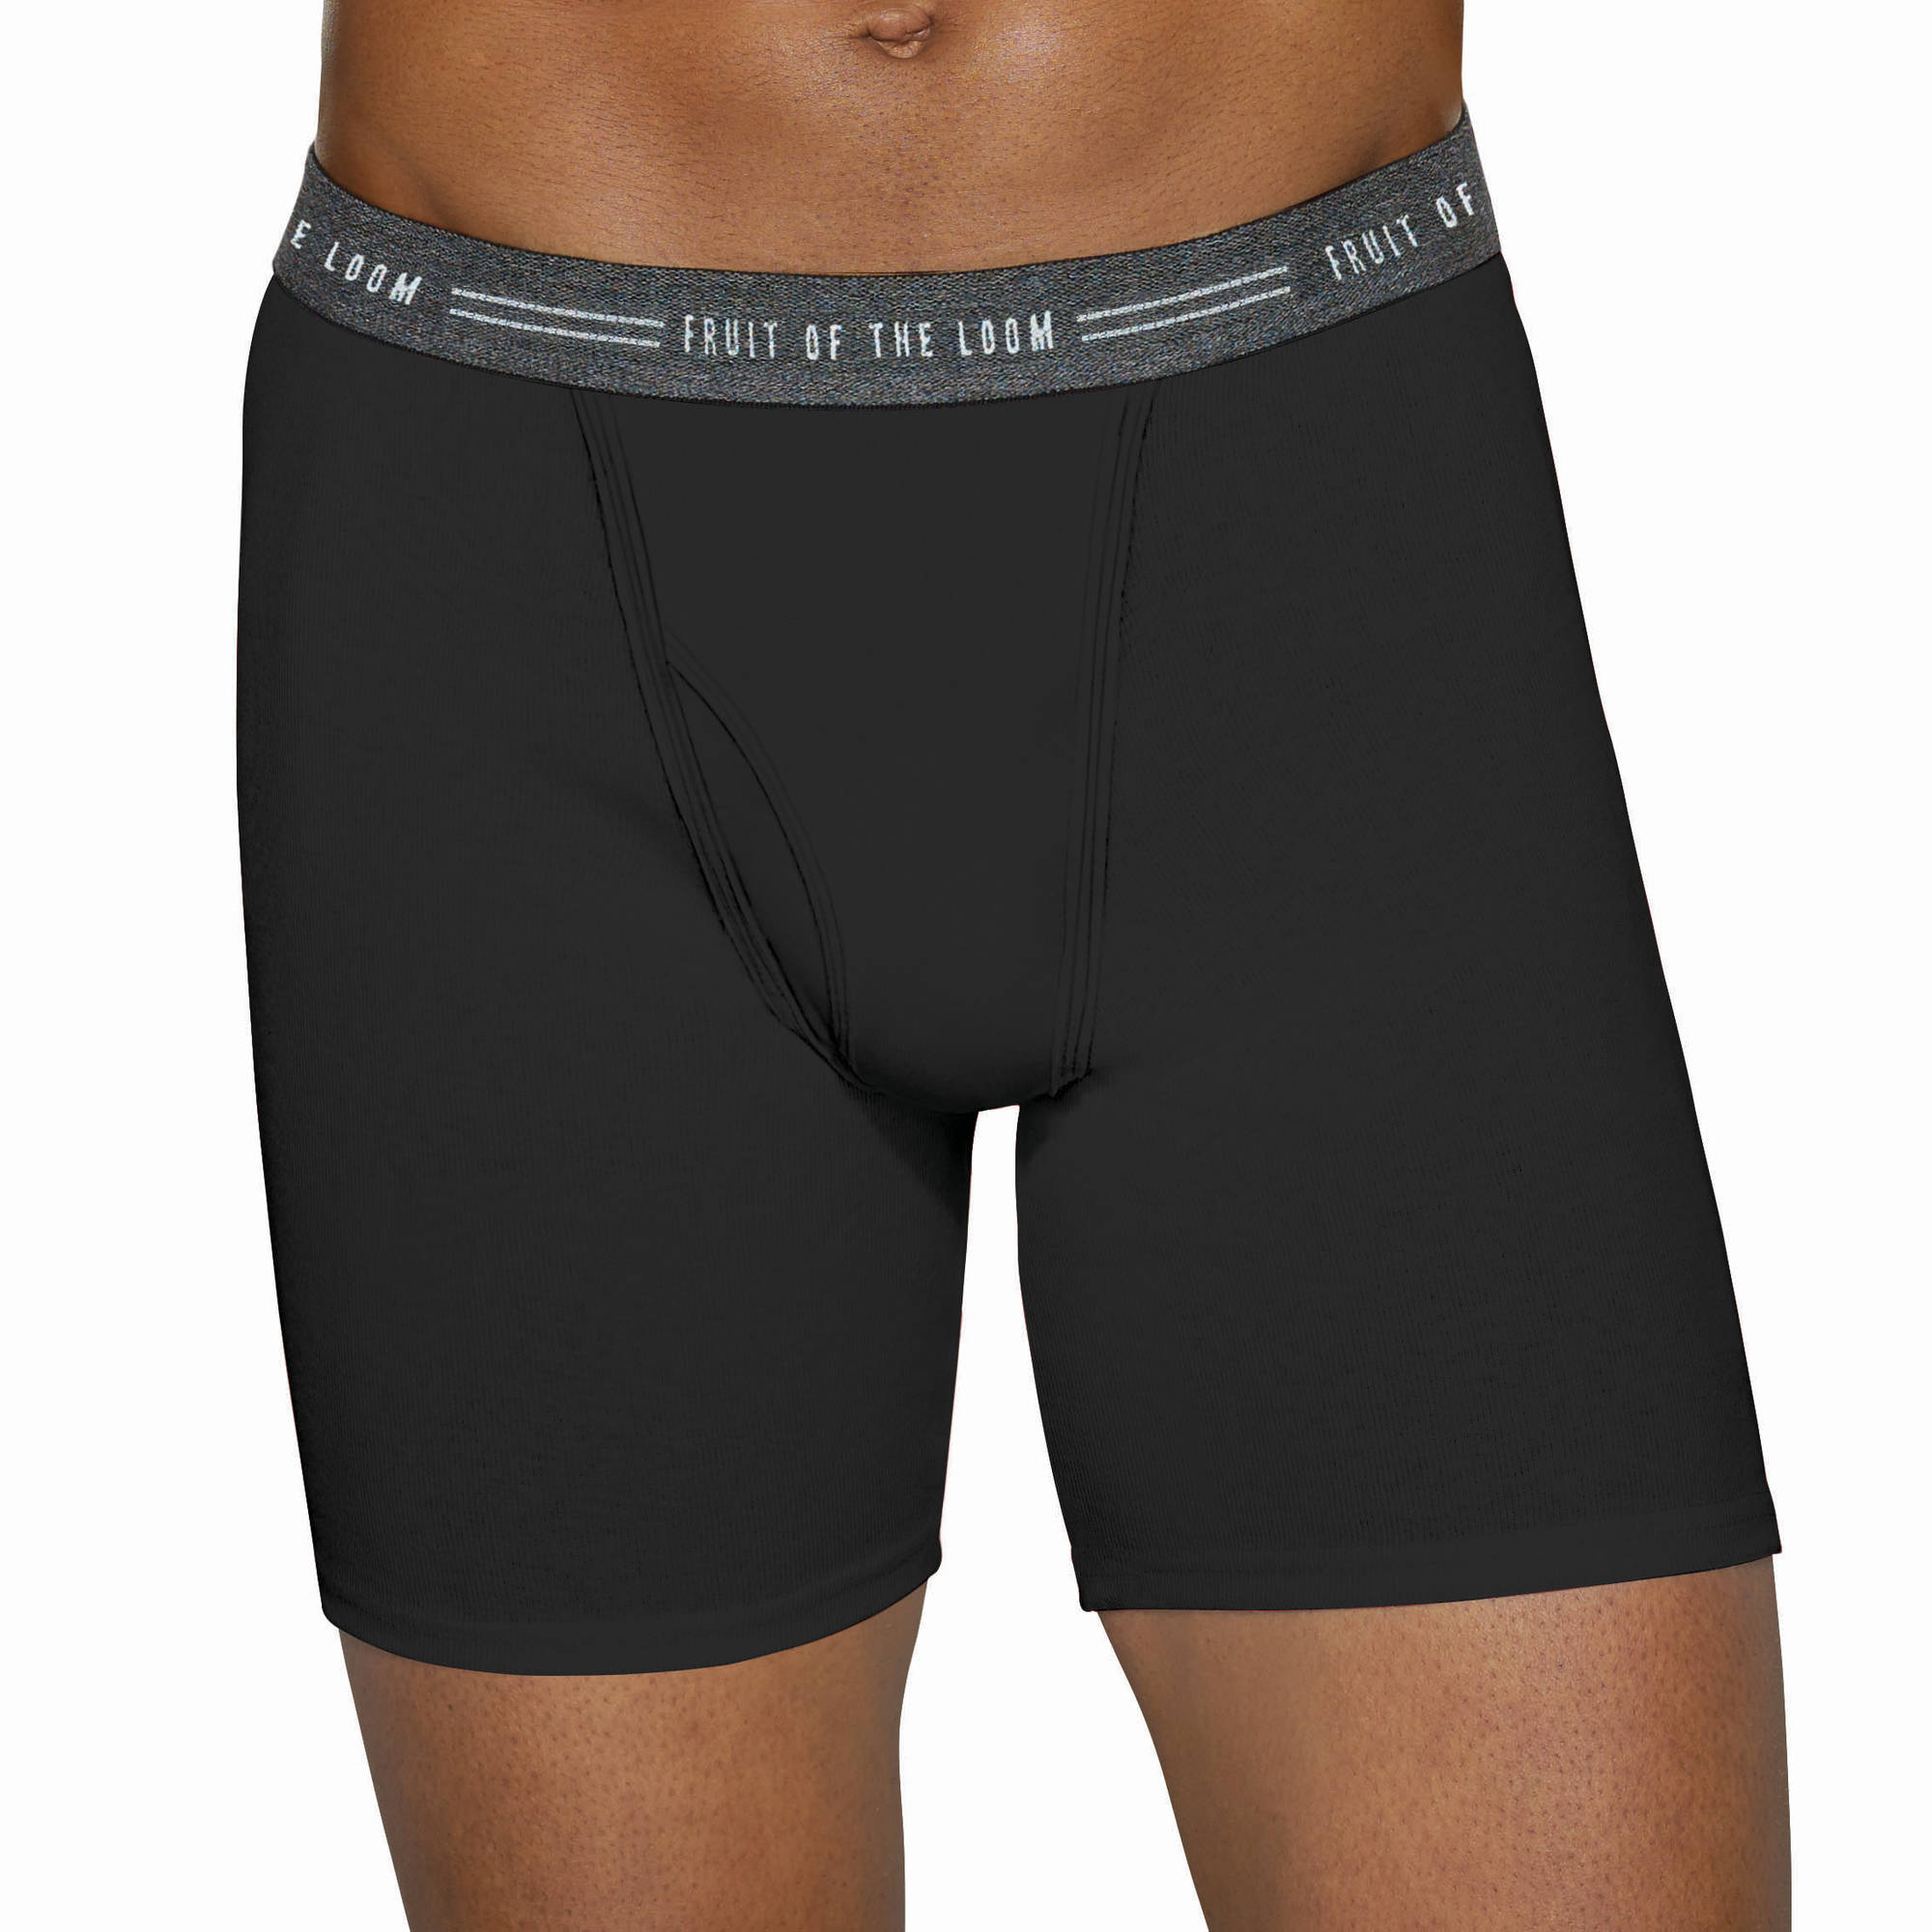 Fruit of the Loom Men's Everyday Active Boxer Briefs, 3-Pack